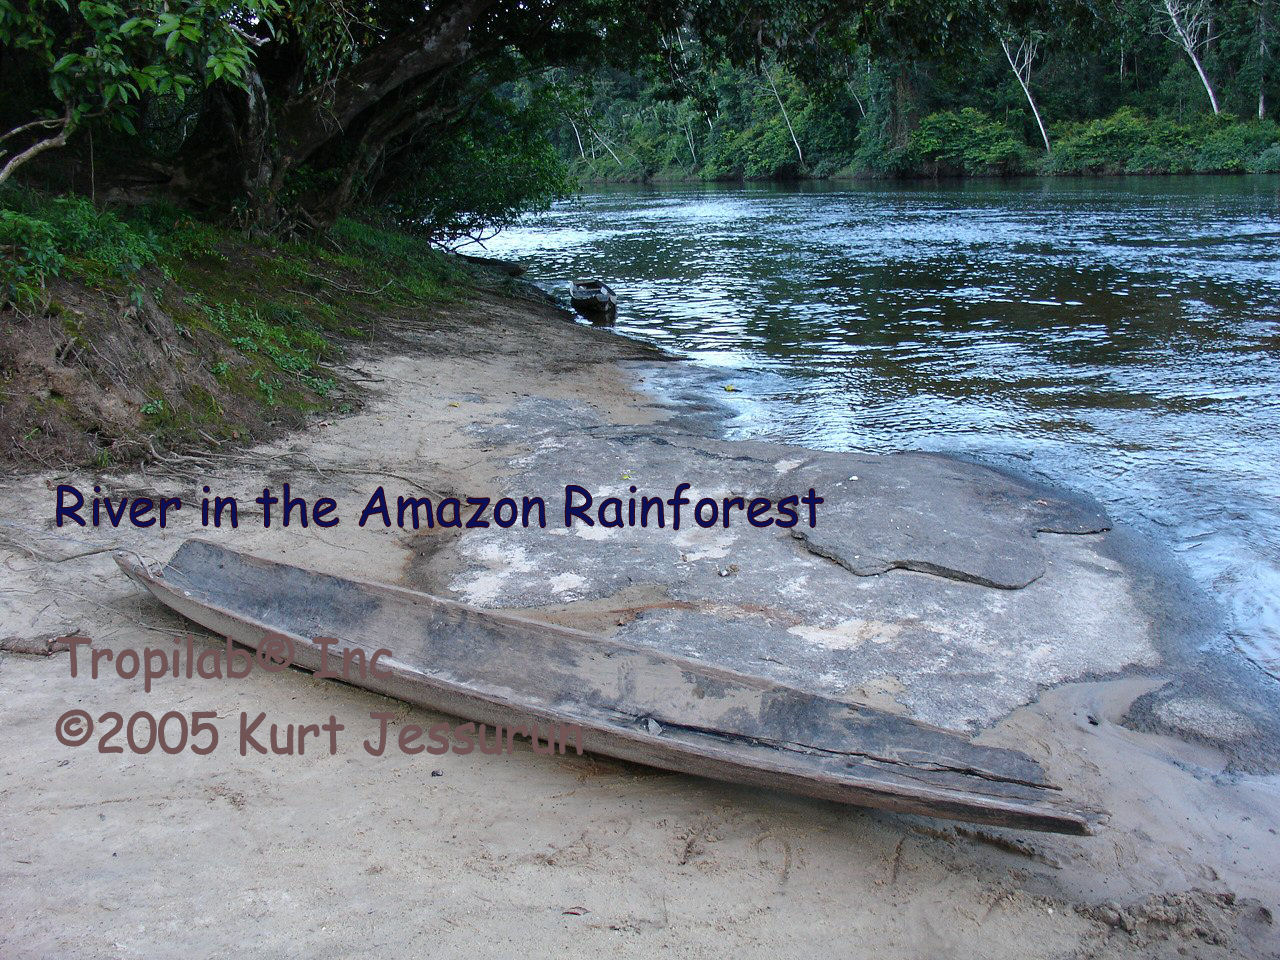 River in the Amazon rainforest